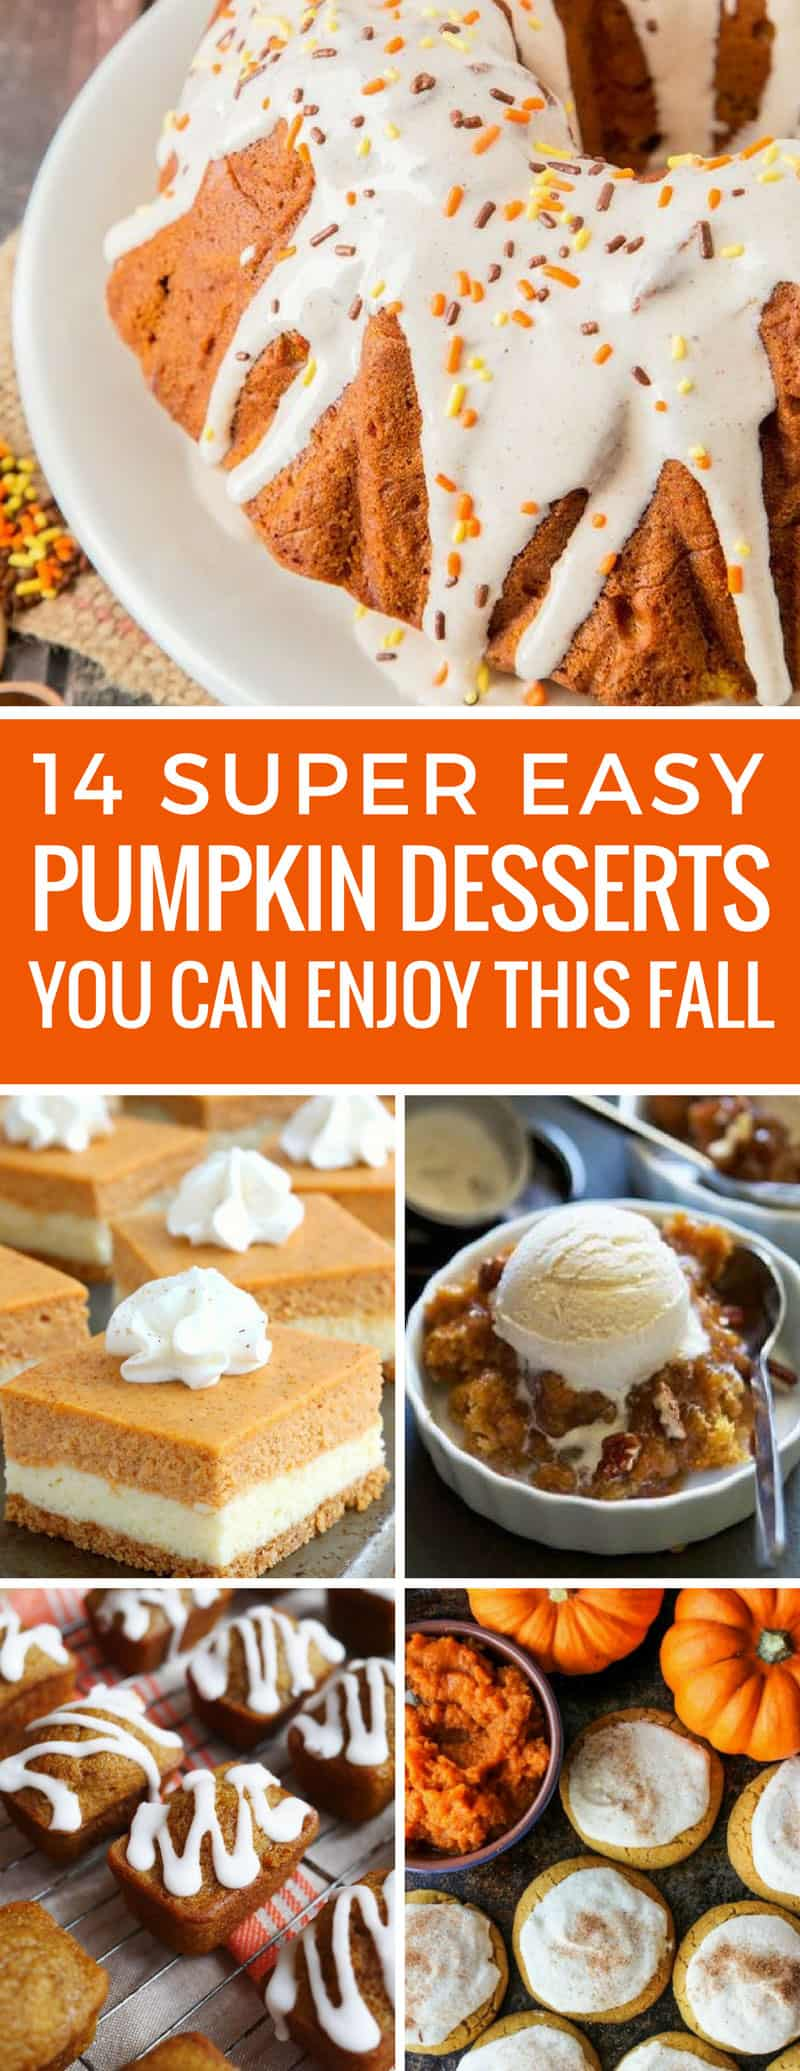 Yum! We love these easy pumpkin desserts - especially the cheesecake bars! Thanks for sharing!